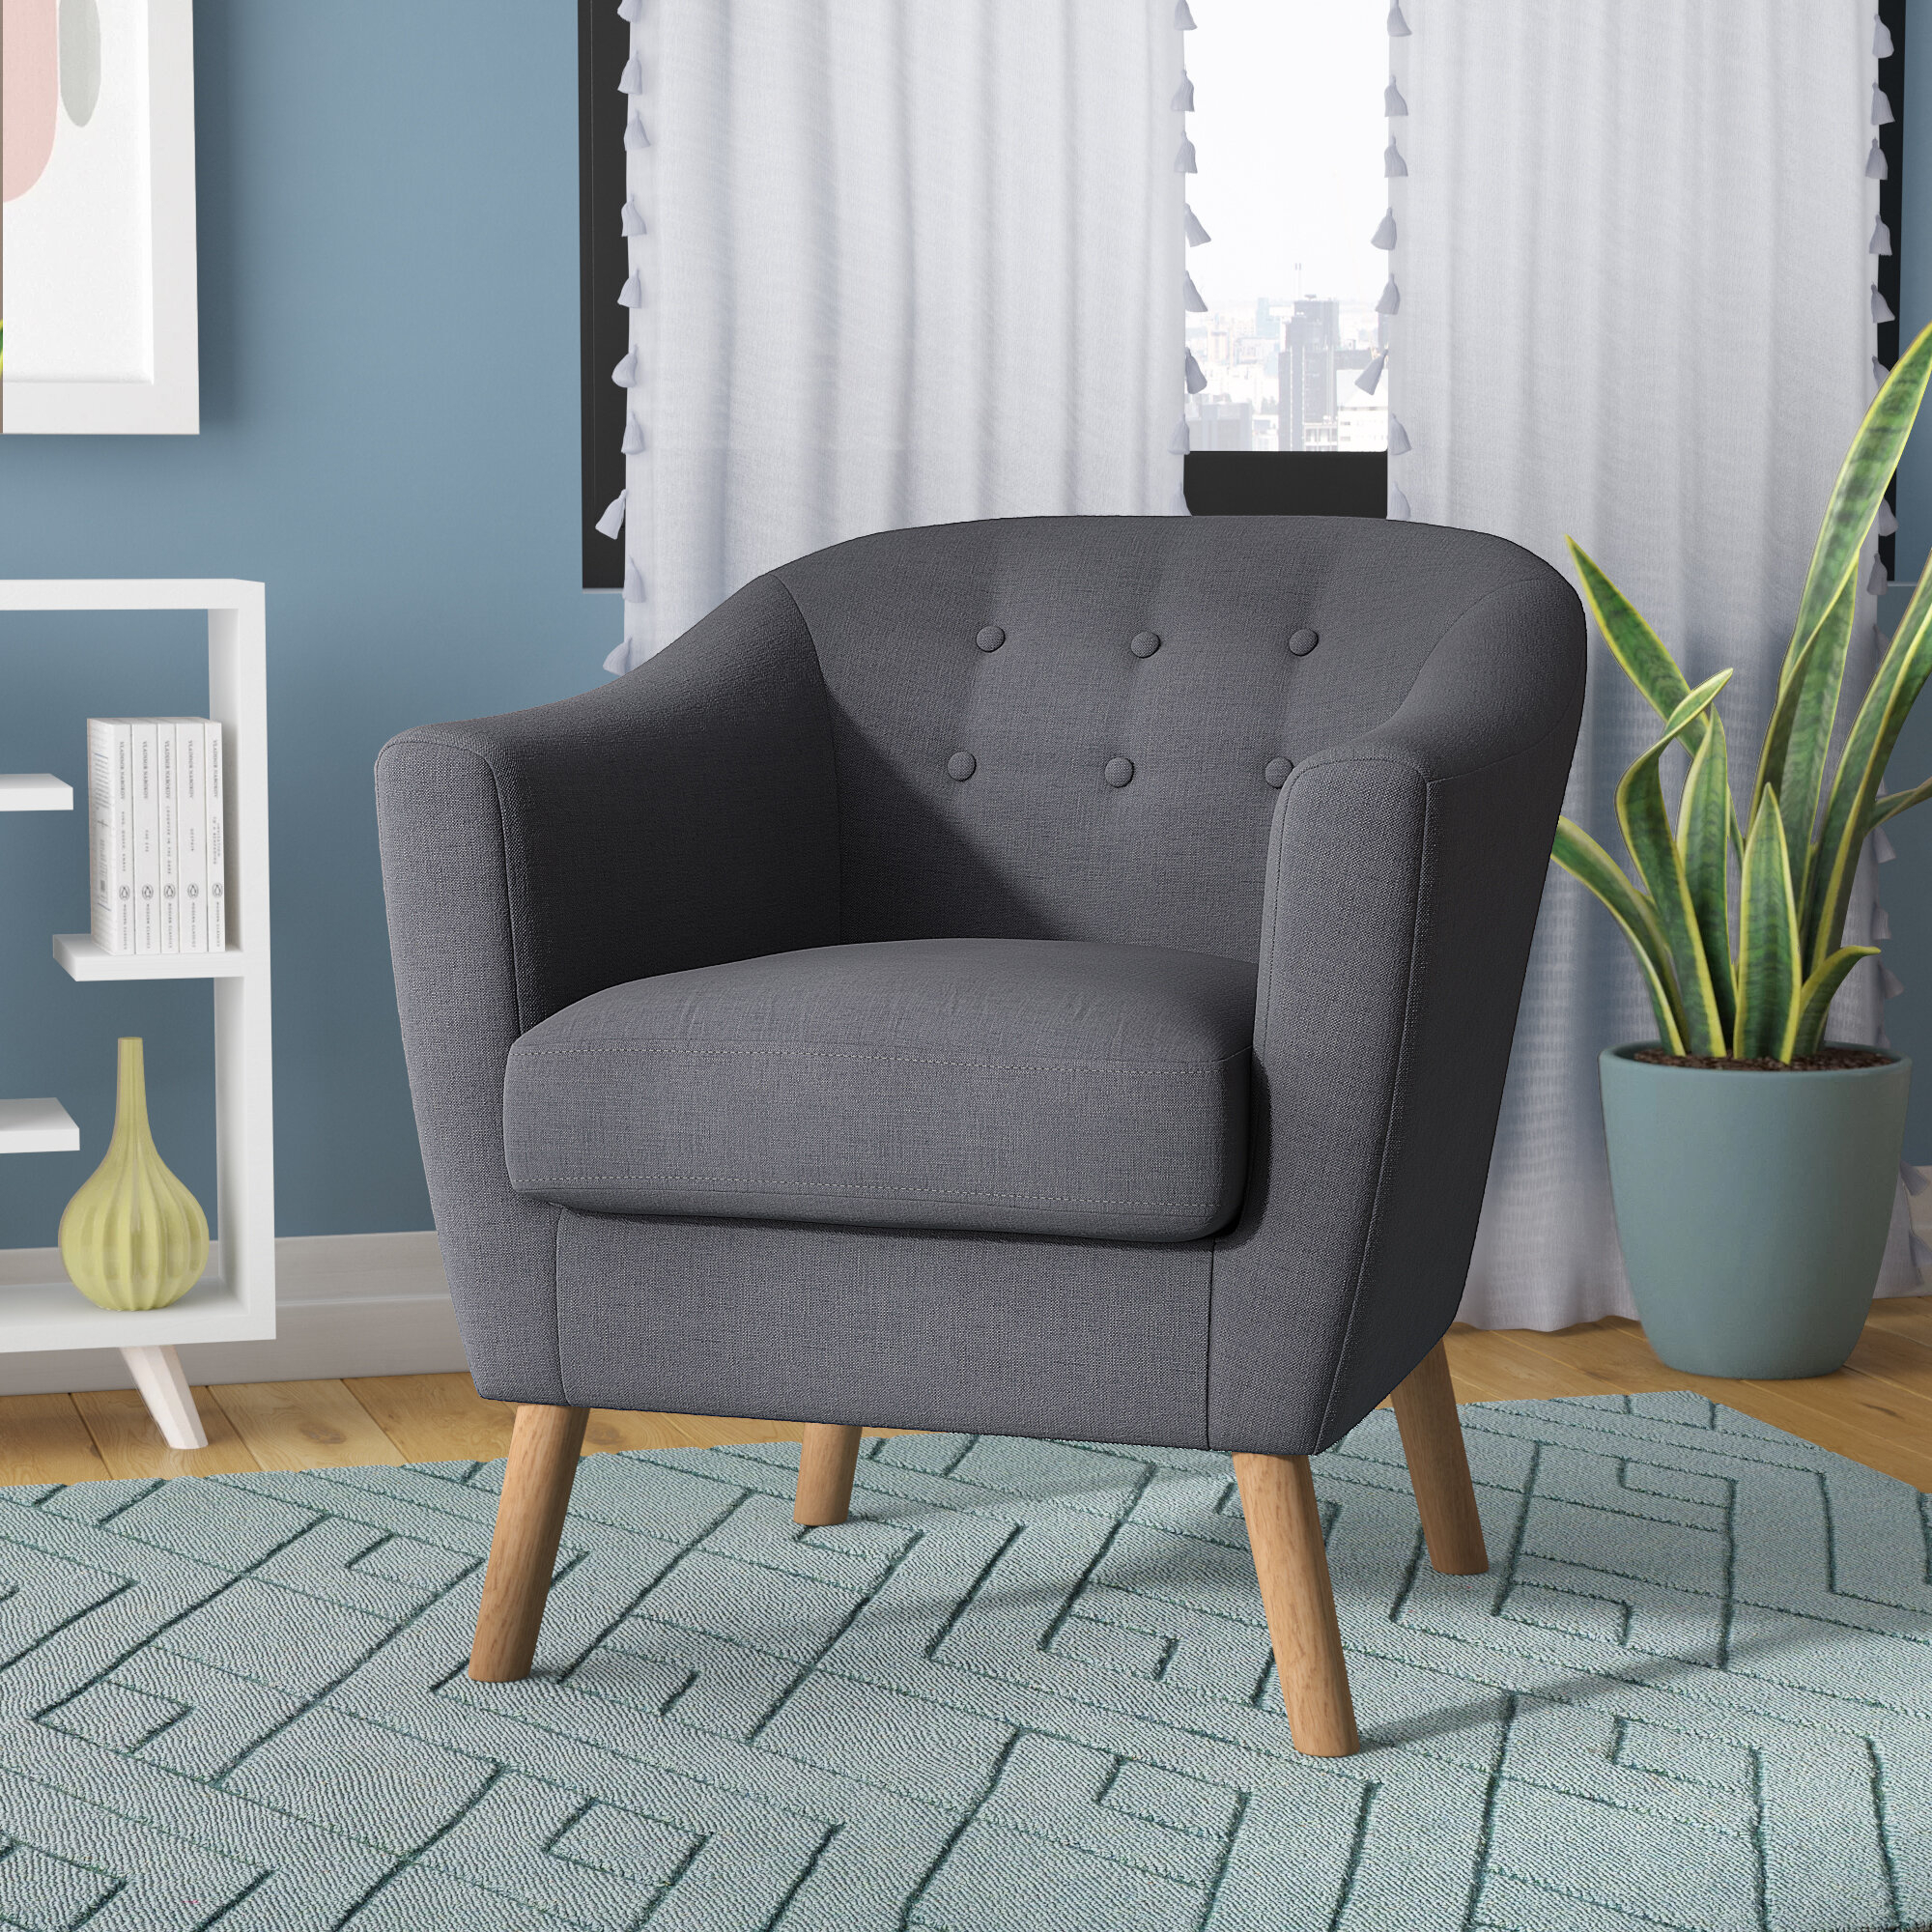 Barrel Scandinavian Accent Chairs You'Ll Love In 2021 | Wayfair With Regard To Claudel Polyester Blend Barrel Chairs (View 7 of 15)